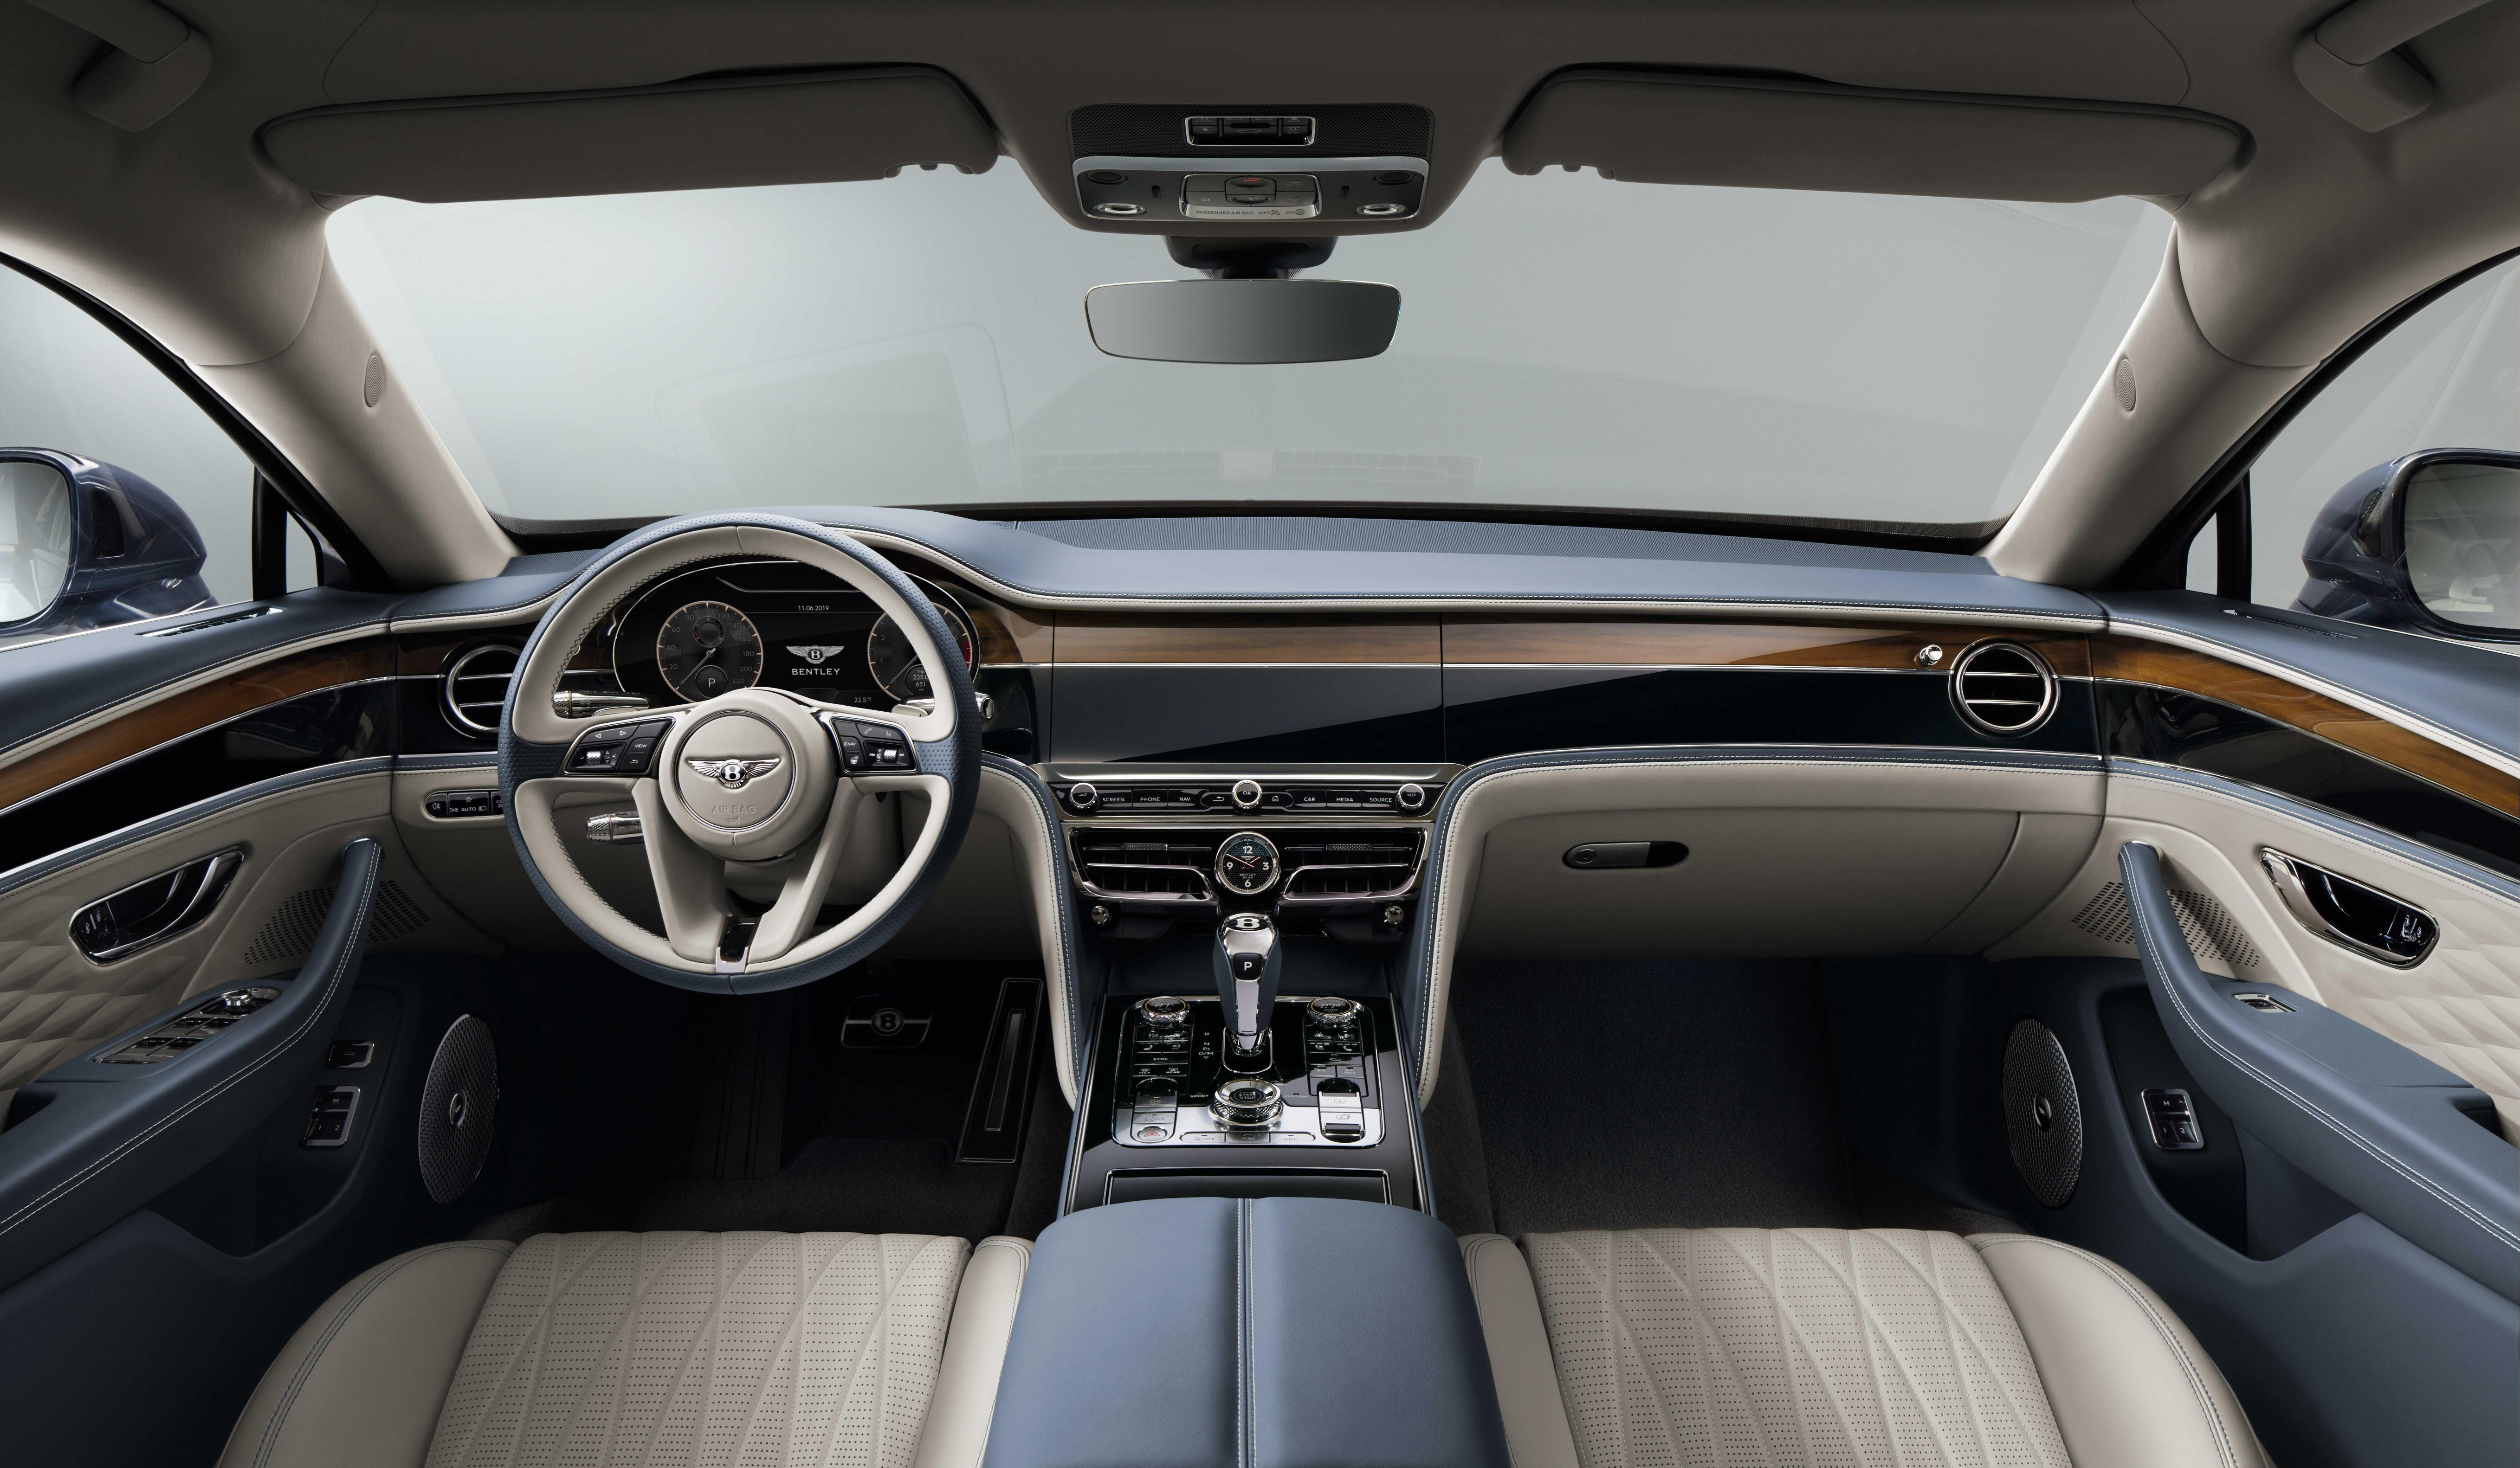 The Flying Spur's interior is available in a variety of different colours and finishes